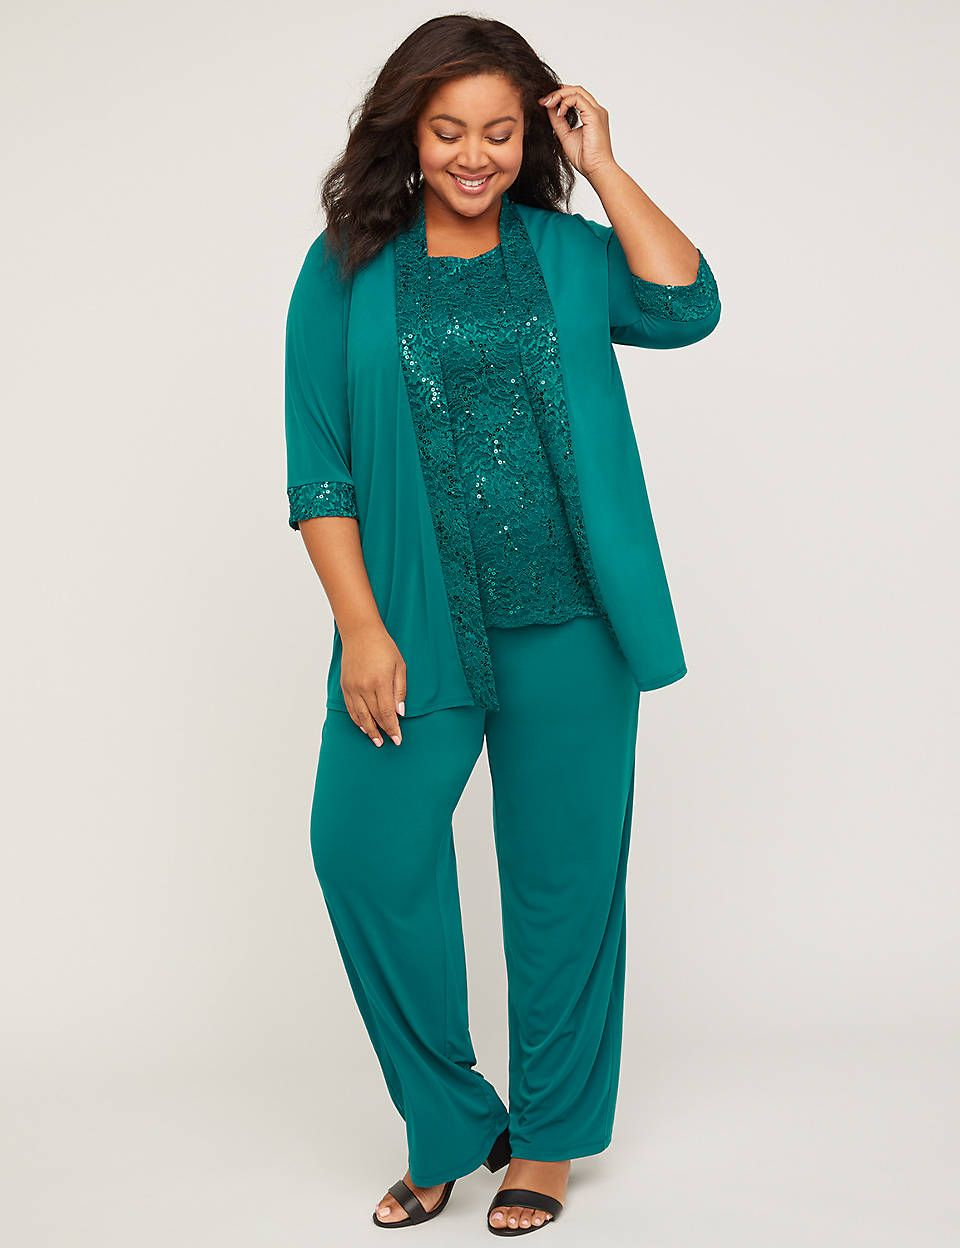 Catherines Dressy Pant Suits